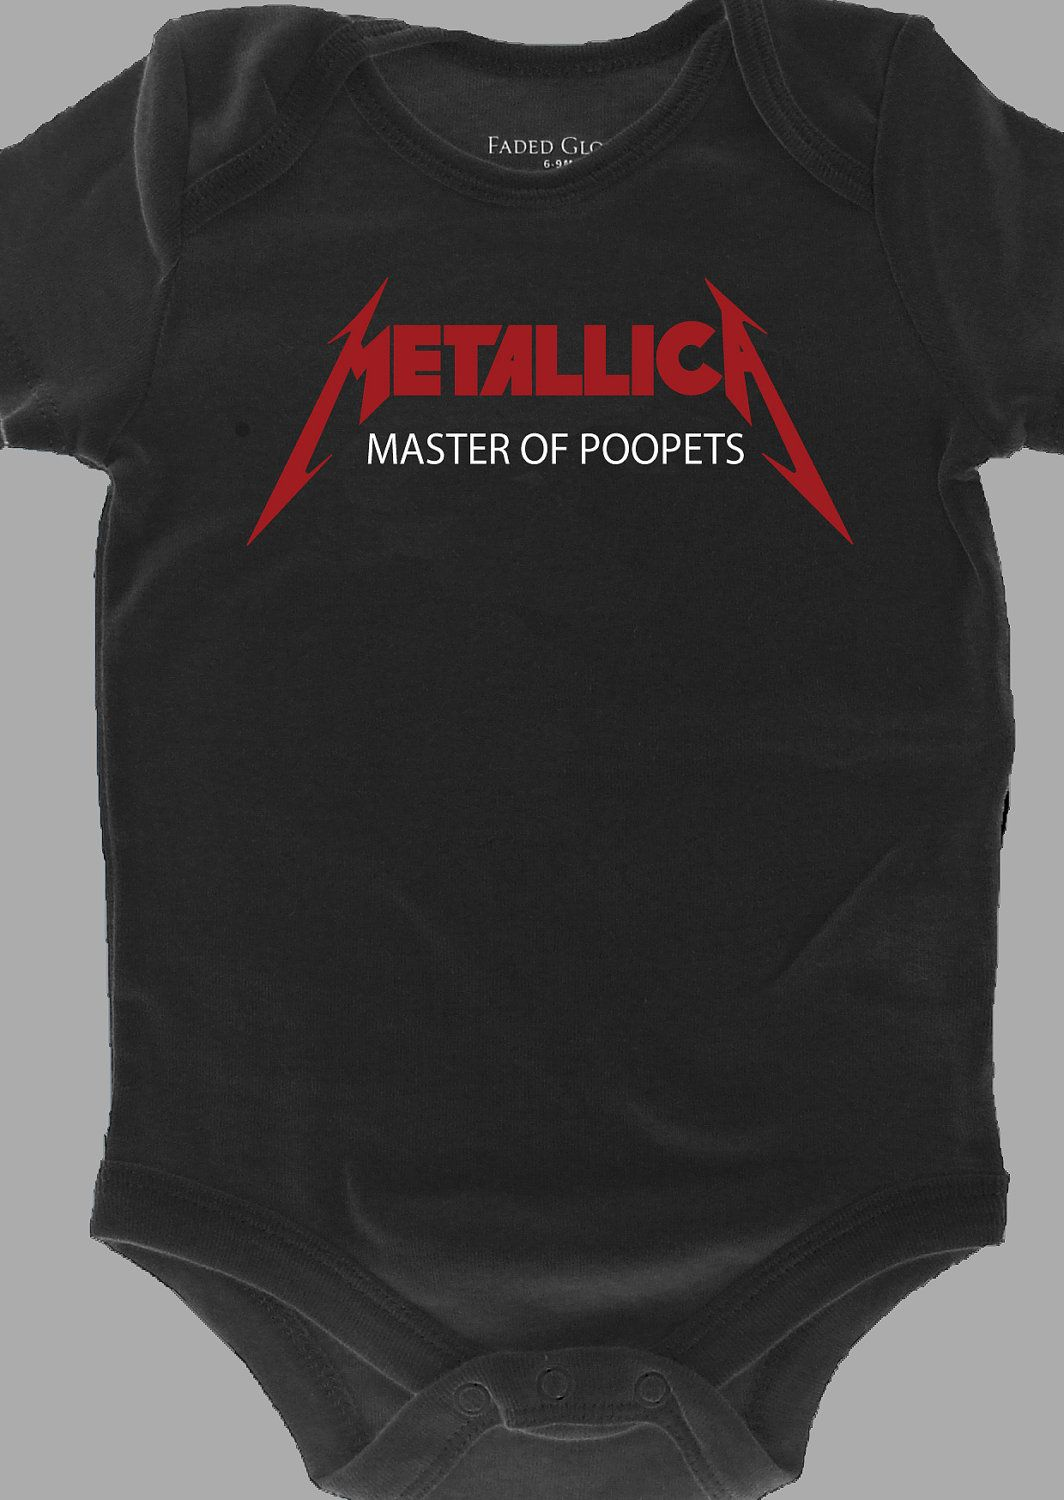 2e7a2871f metallica onesies - Google Search | Baby boy outfits | Baby bodysuit ...